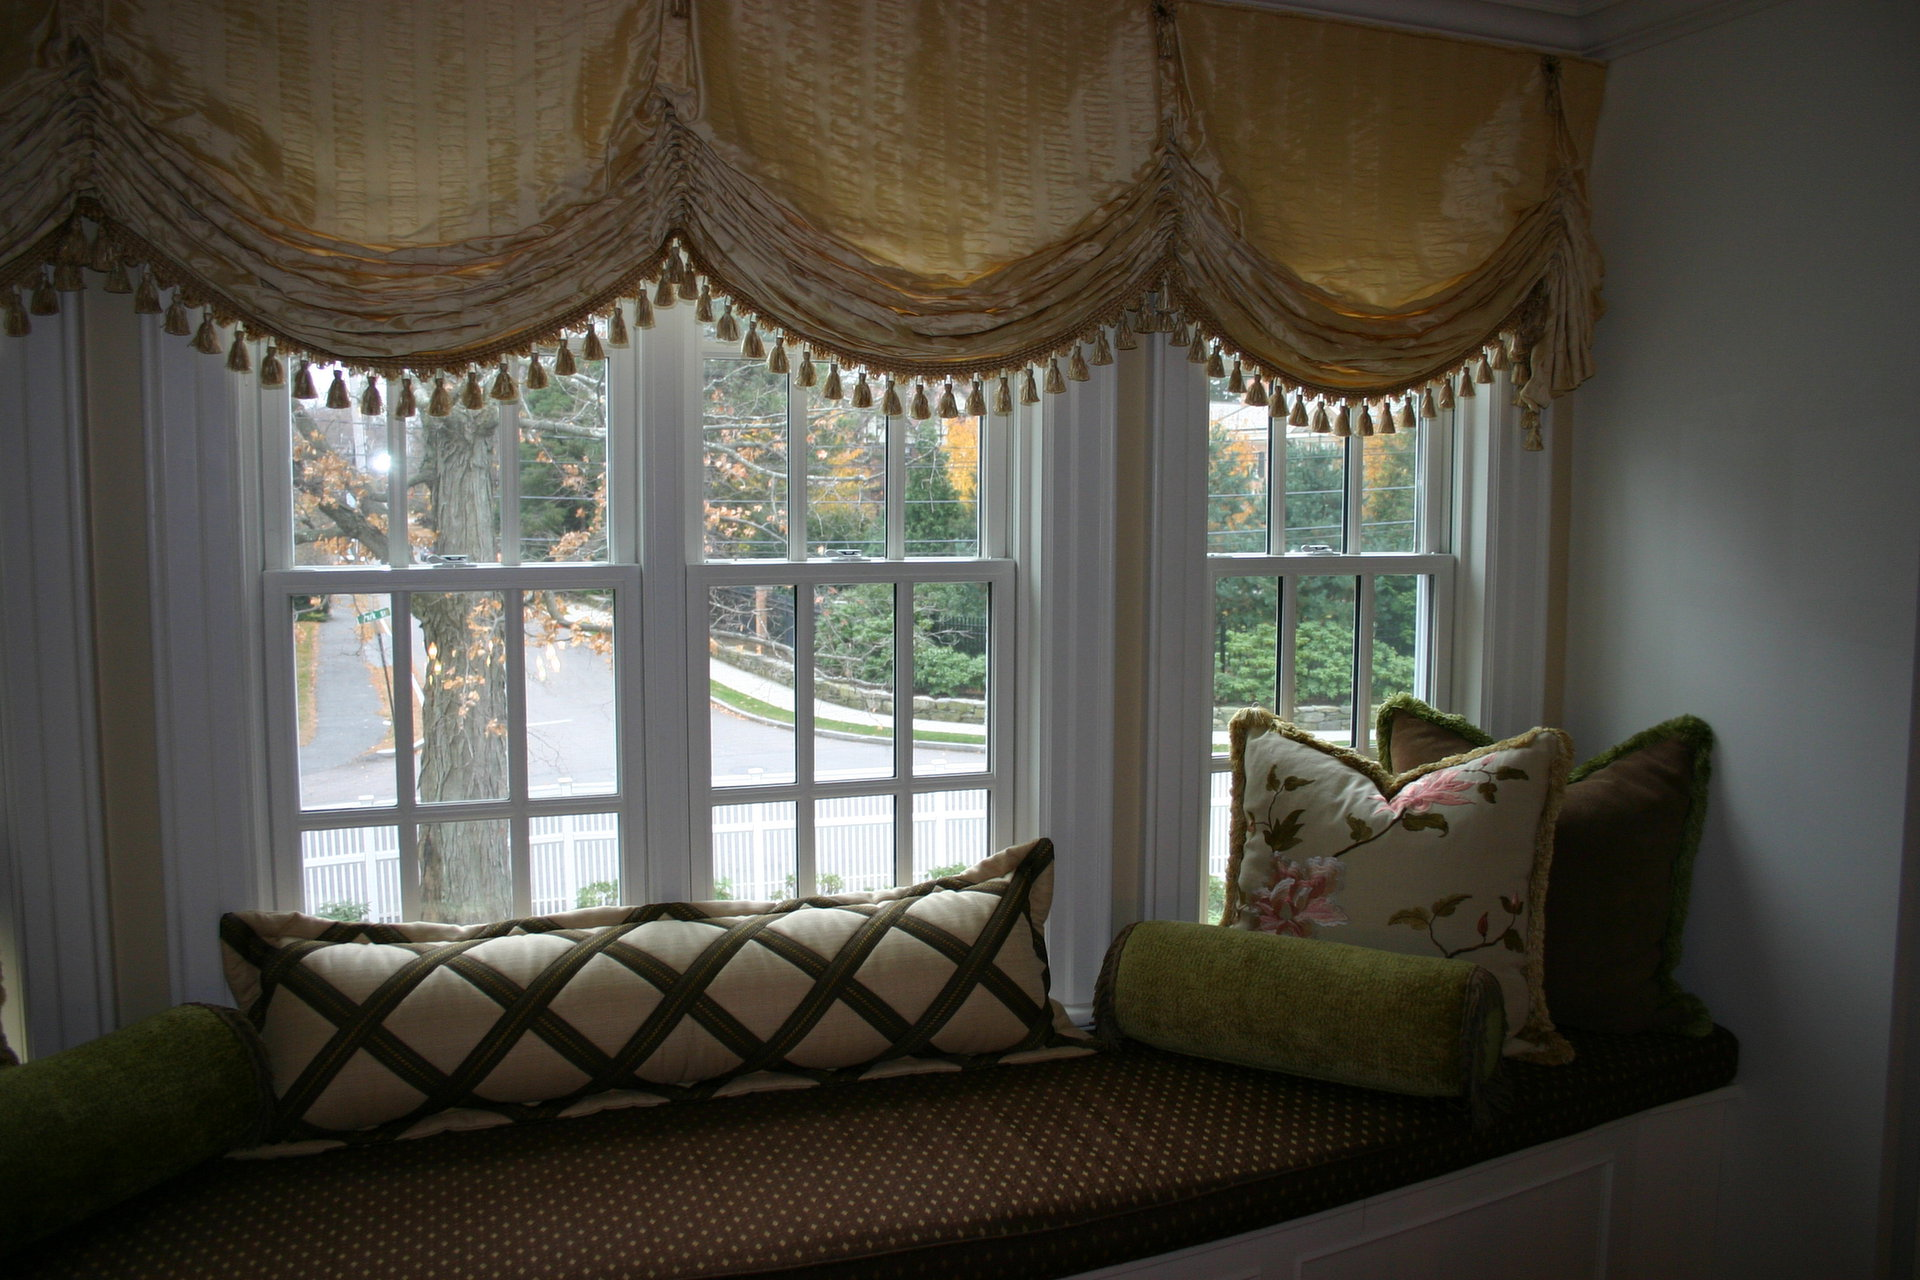 Jw custom window designs window seat pillows for Custom window designs